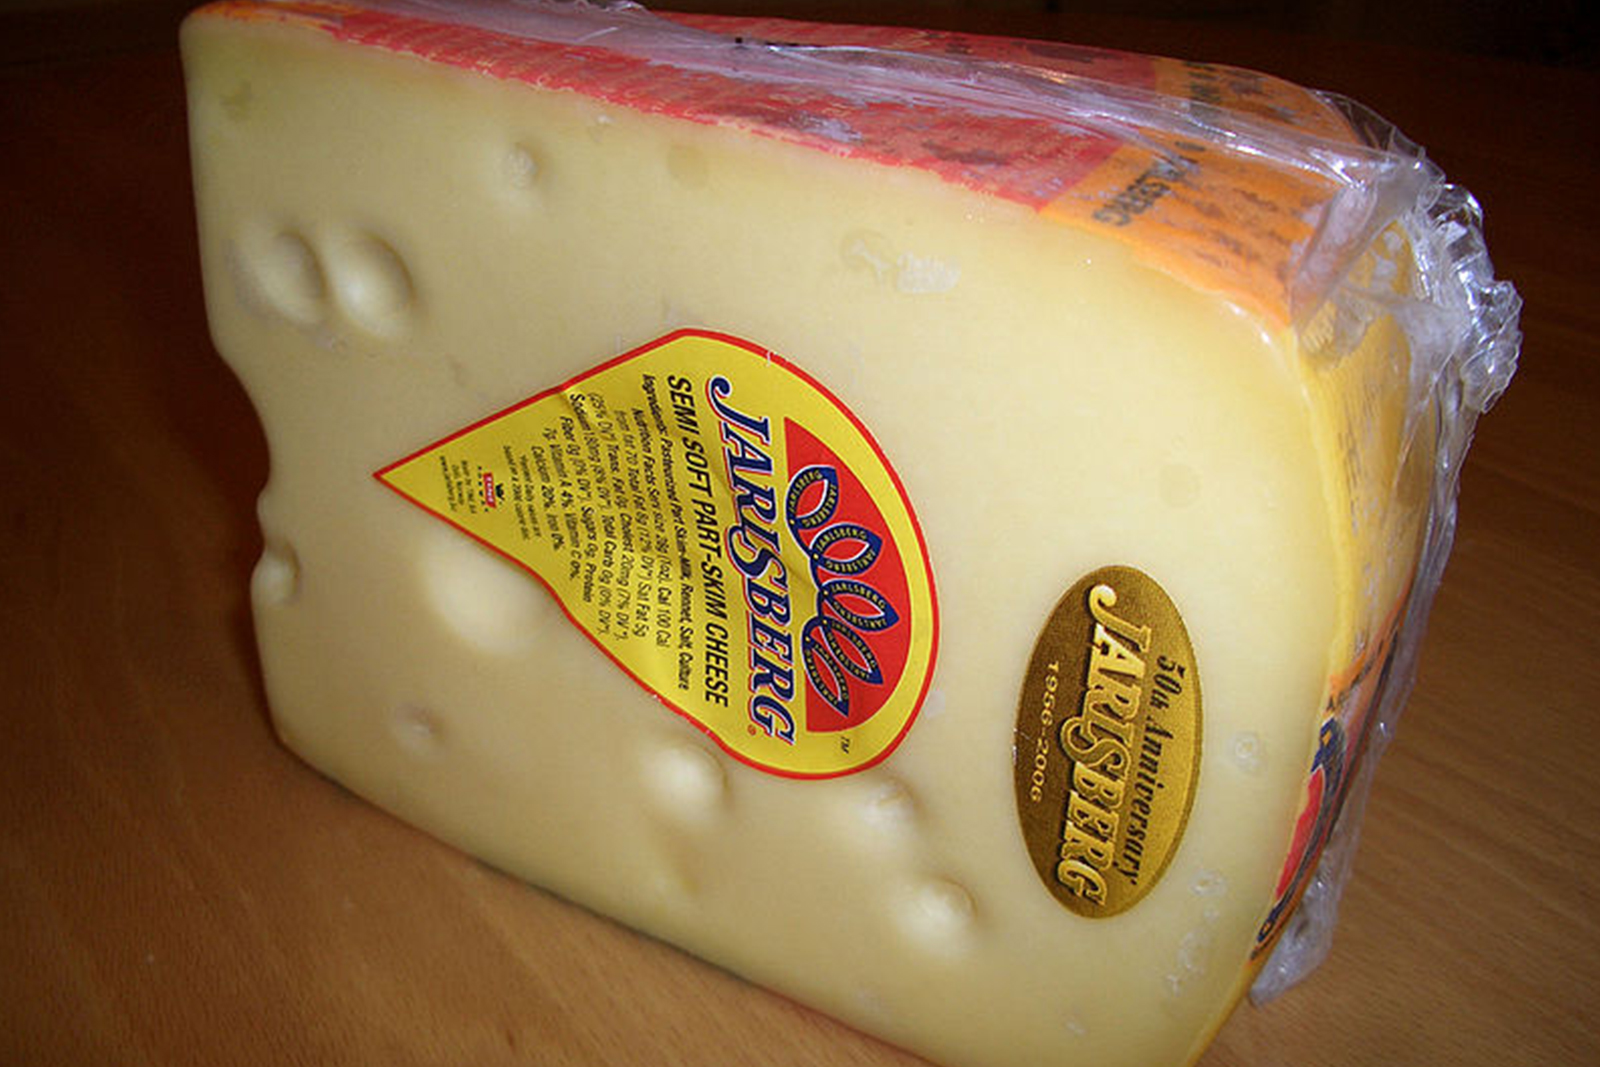 Jarlsburg Cheese